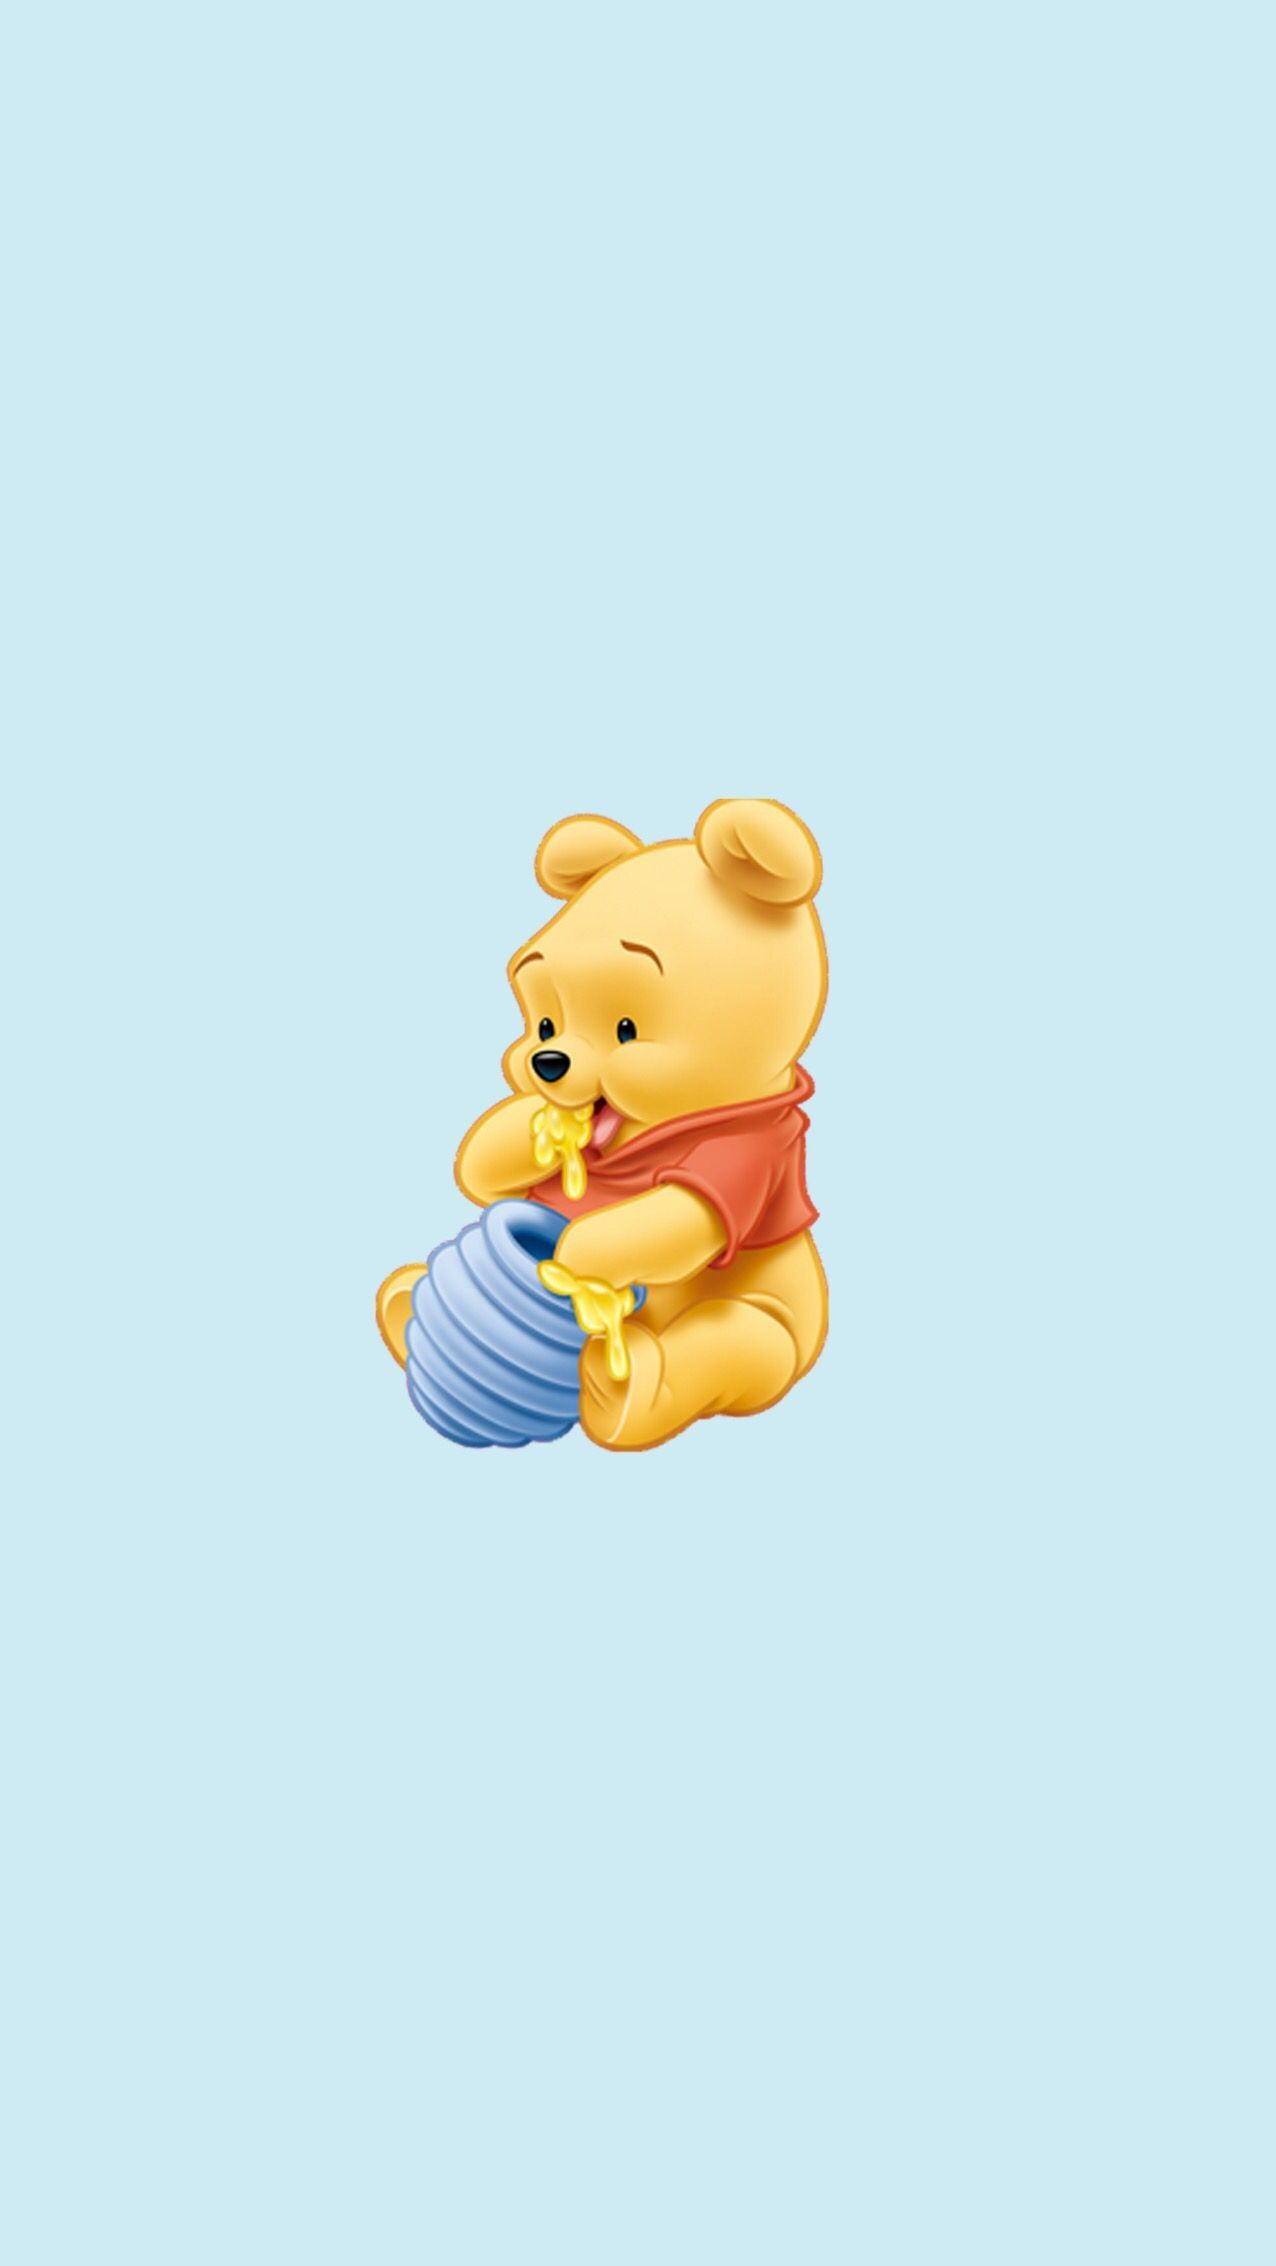 Pin Hawaiian Punch On Cute Wallpapers In 2019 Wallpaper Within Winnie The Pooh Wallpapers For Iphone In 2020 Cute Cartoon Wallpapers Disney Wallpaper Cartoon Wallpaper